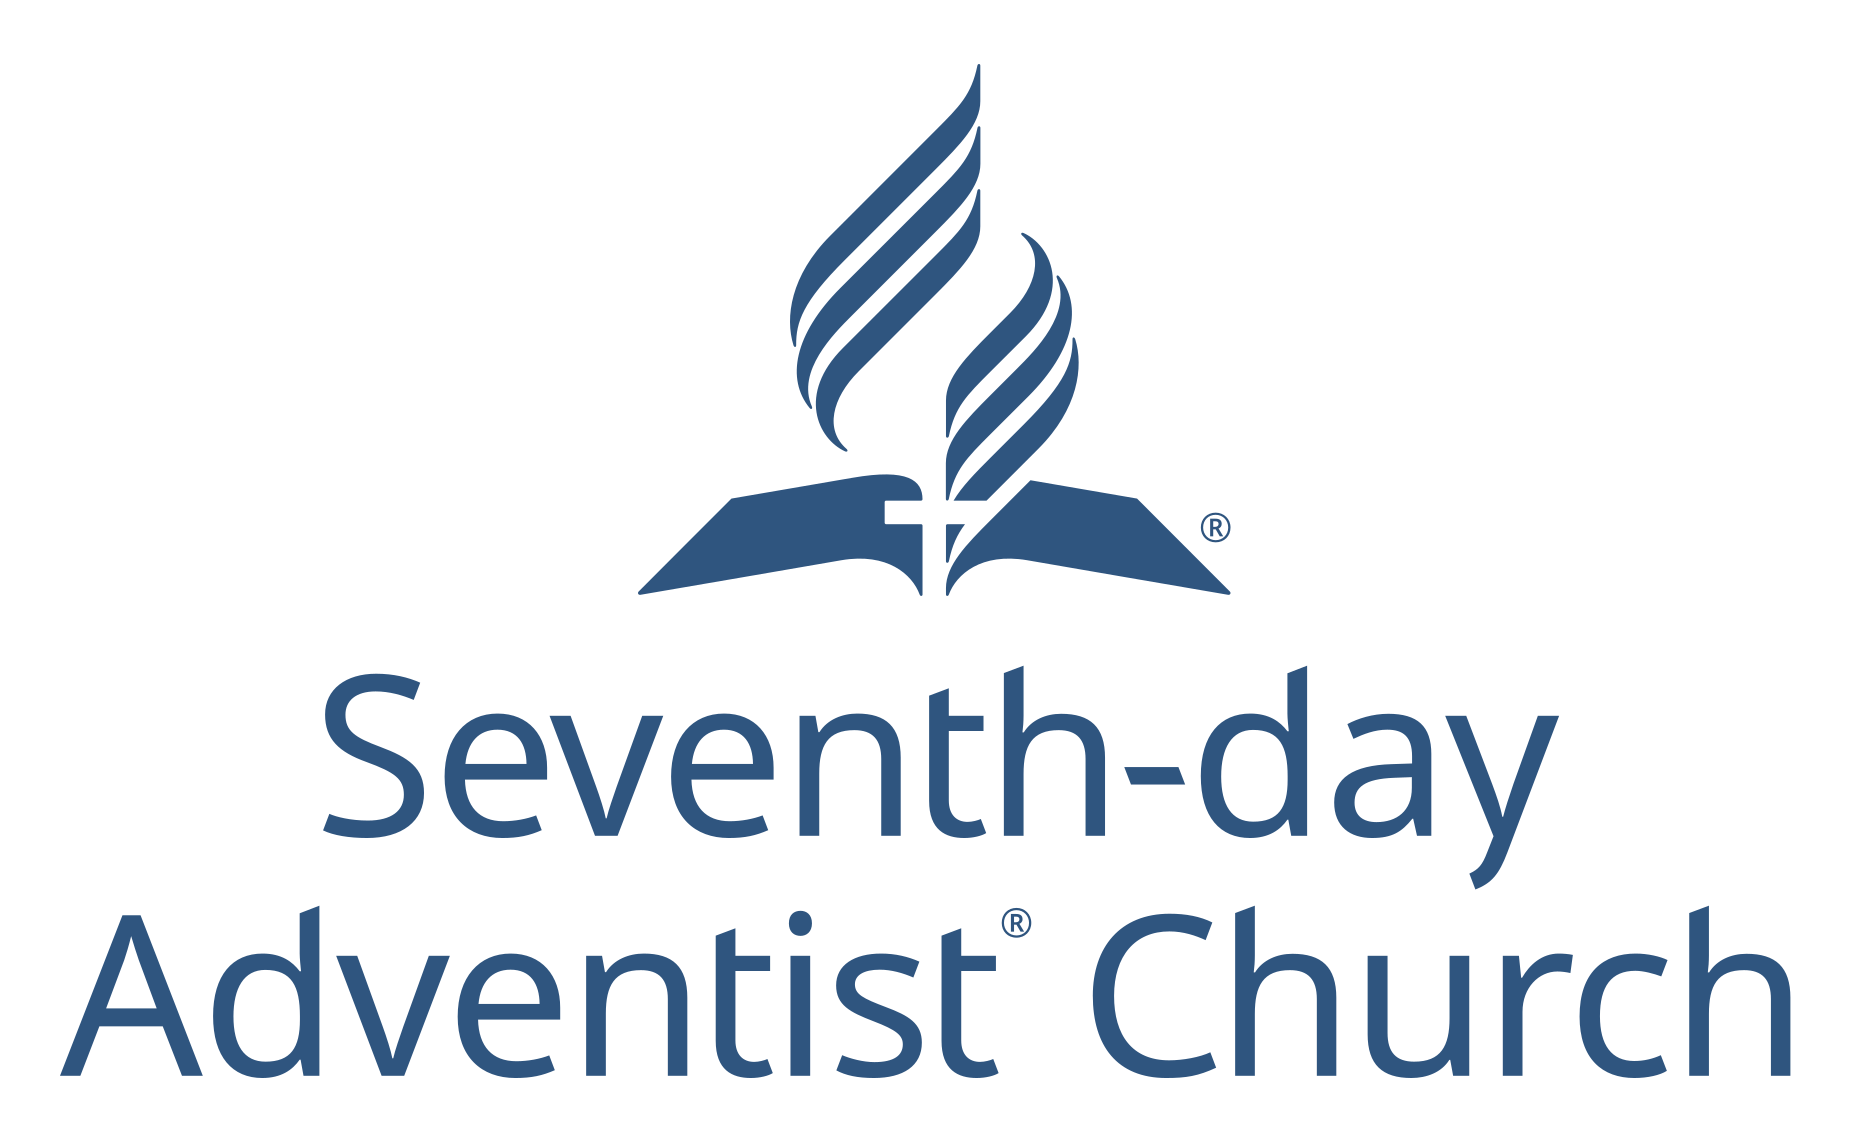 adventist-en-centered--denim.png